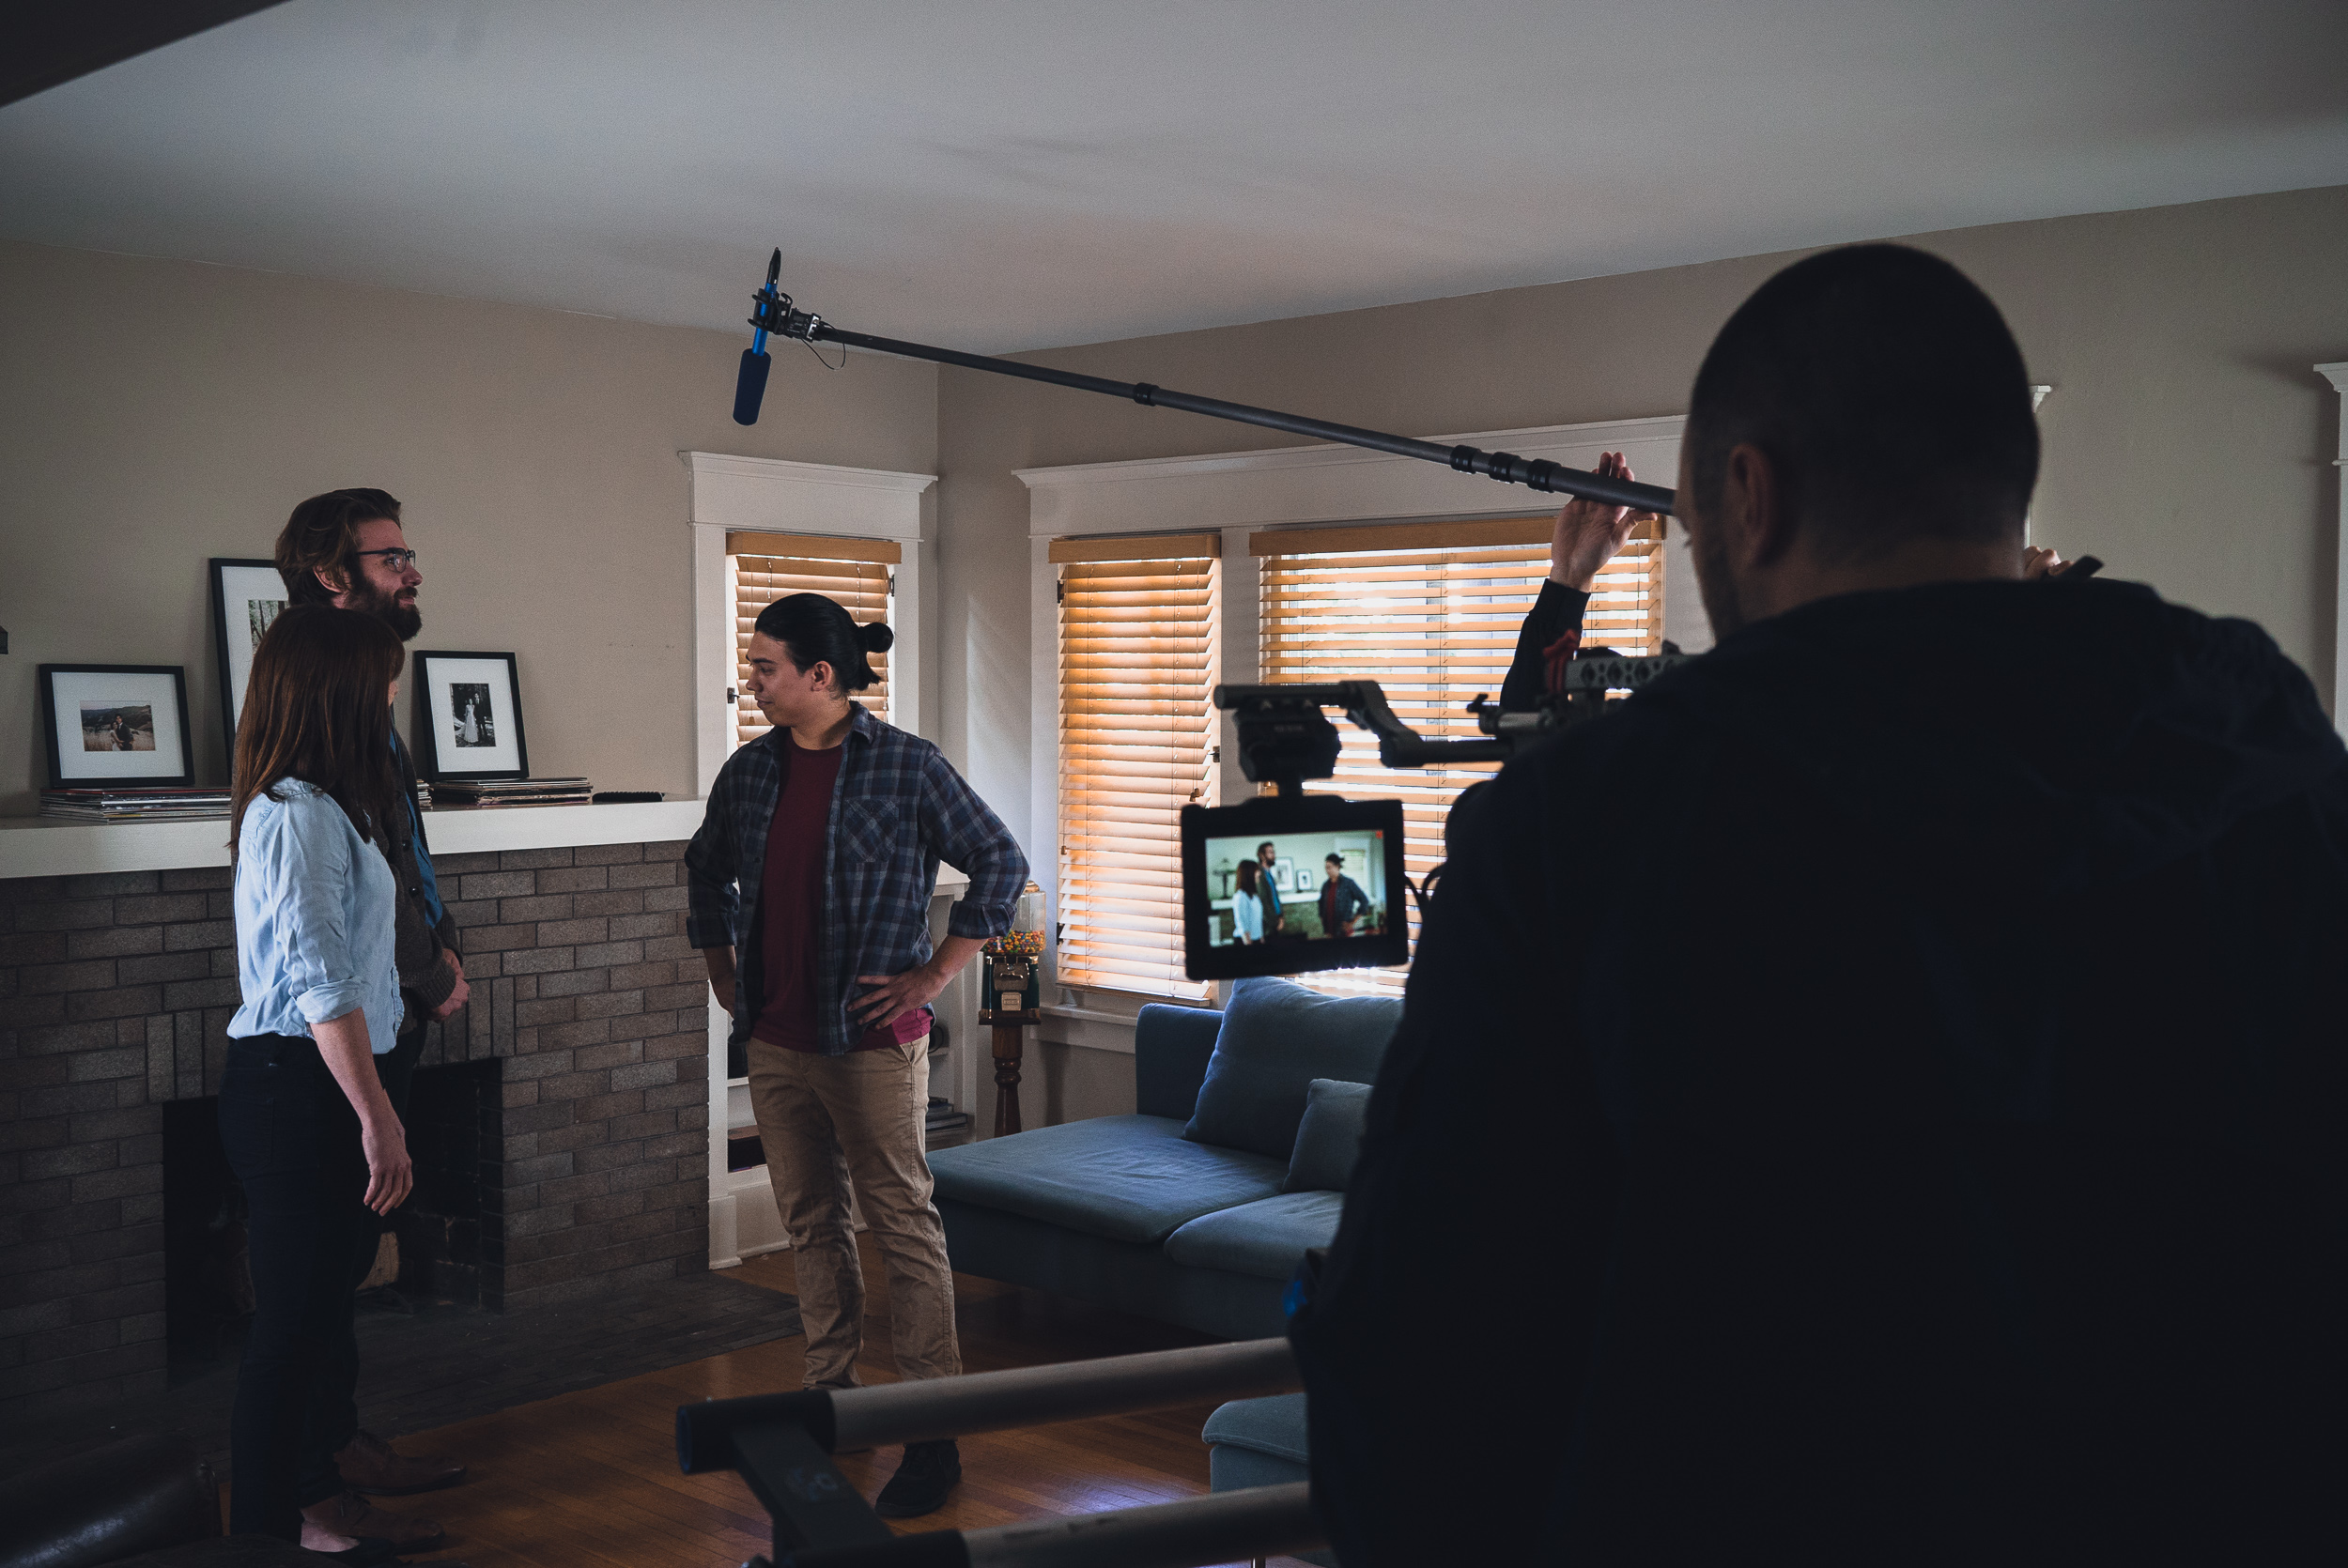 House Tour_PROD STILL_20180426_028.jpg